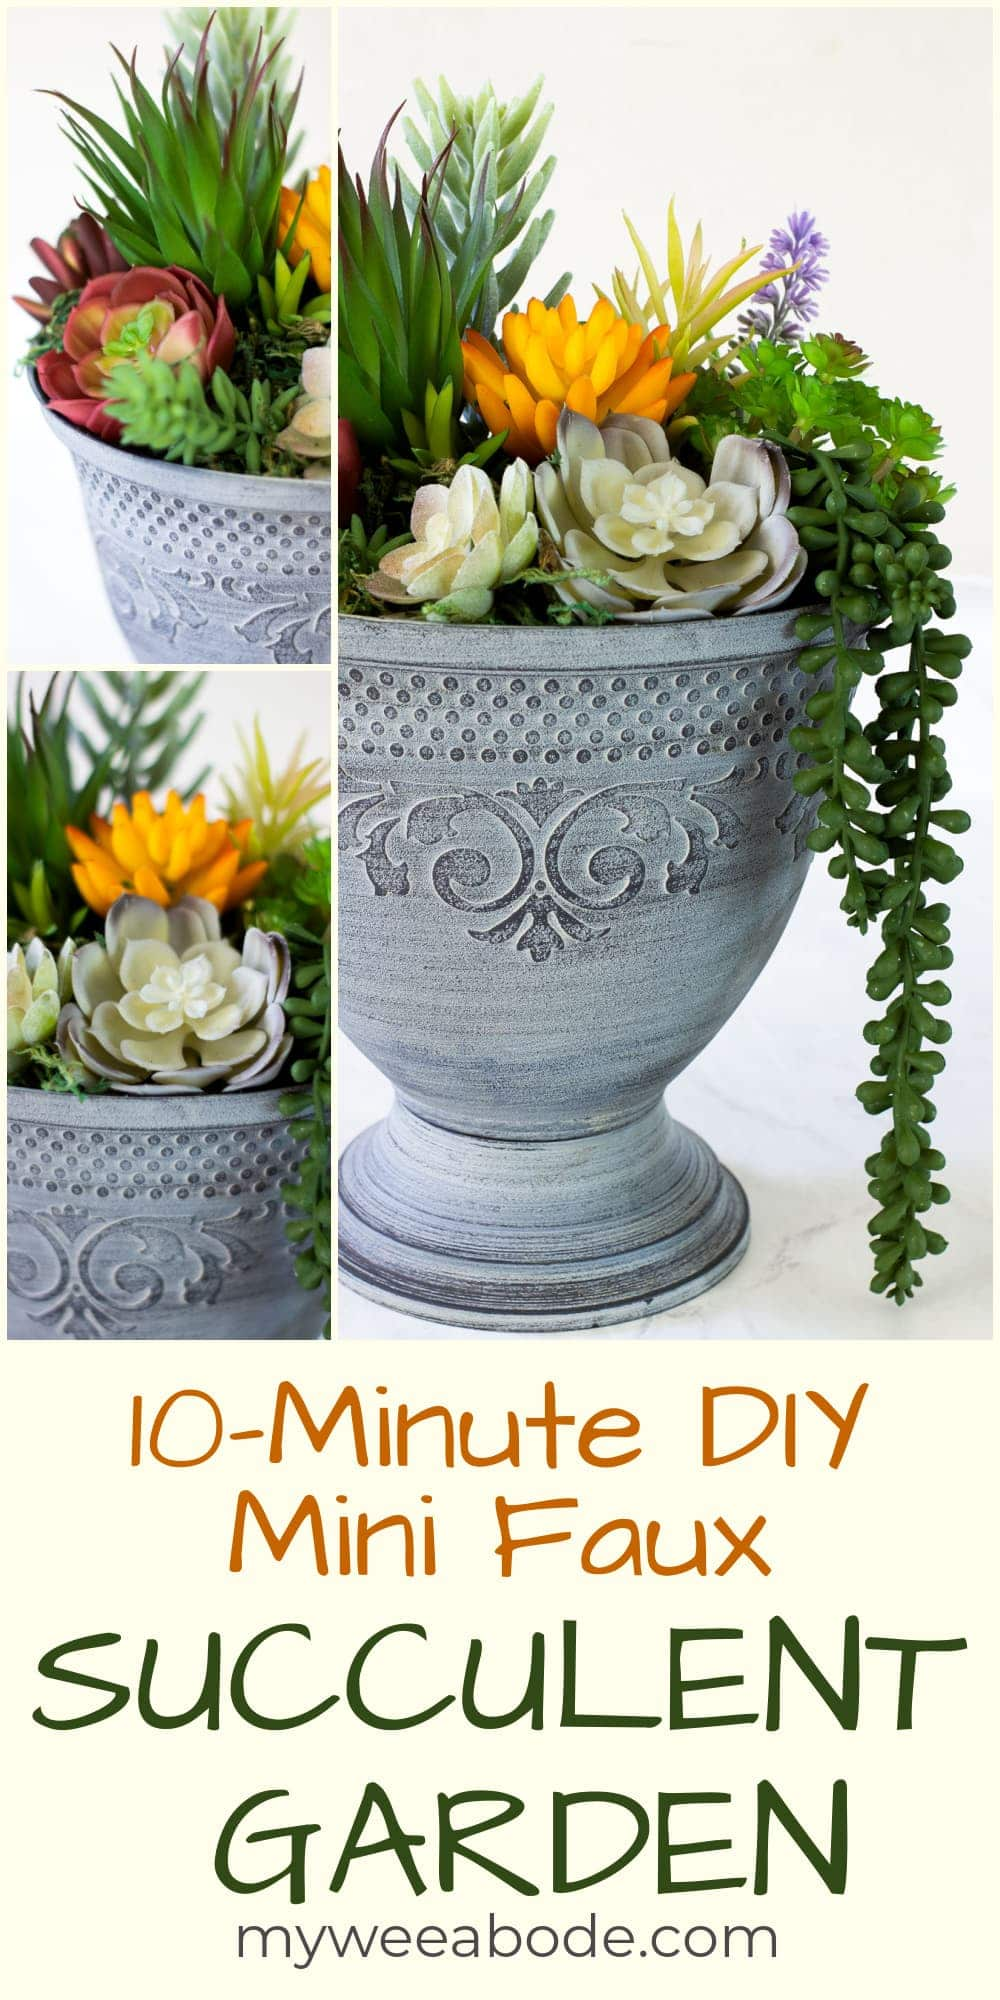 You can create a high-end look for pennies with this DIY faux succulent arrangement. Using items purchased on line or already at home, create your own artificial succulent garden in just about 10 minutes.